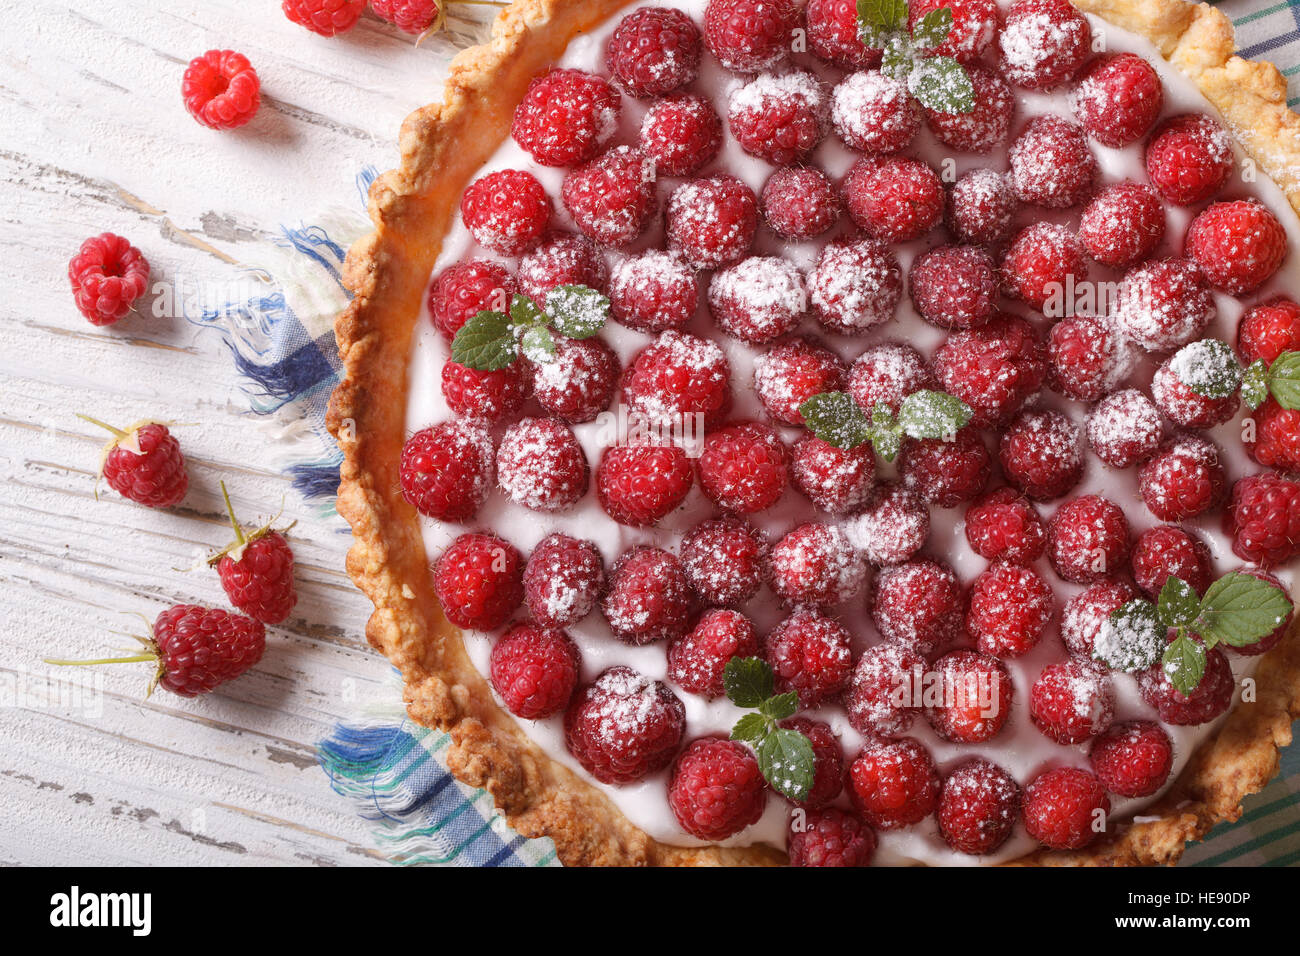 Homemade raspberry tart with cream close-up. horizontal view from above - Stock Image